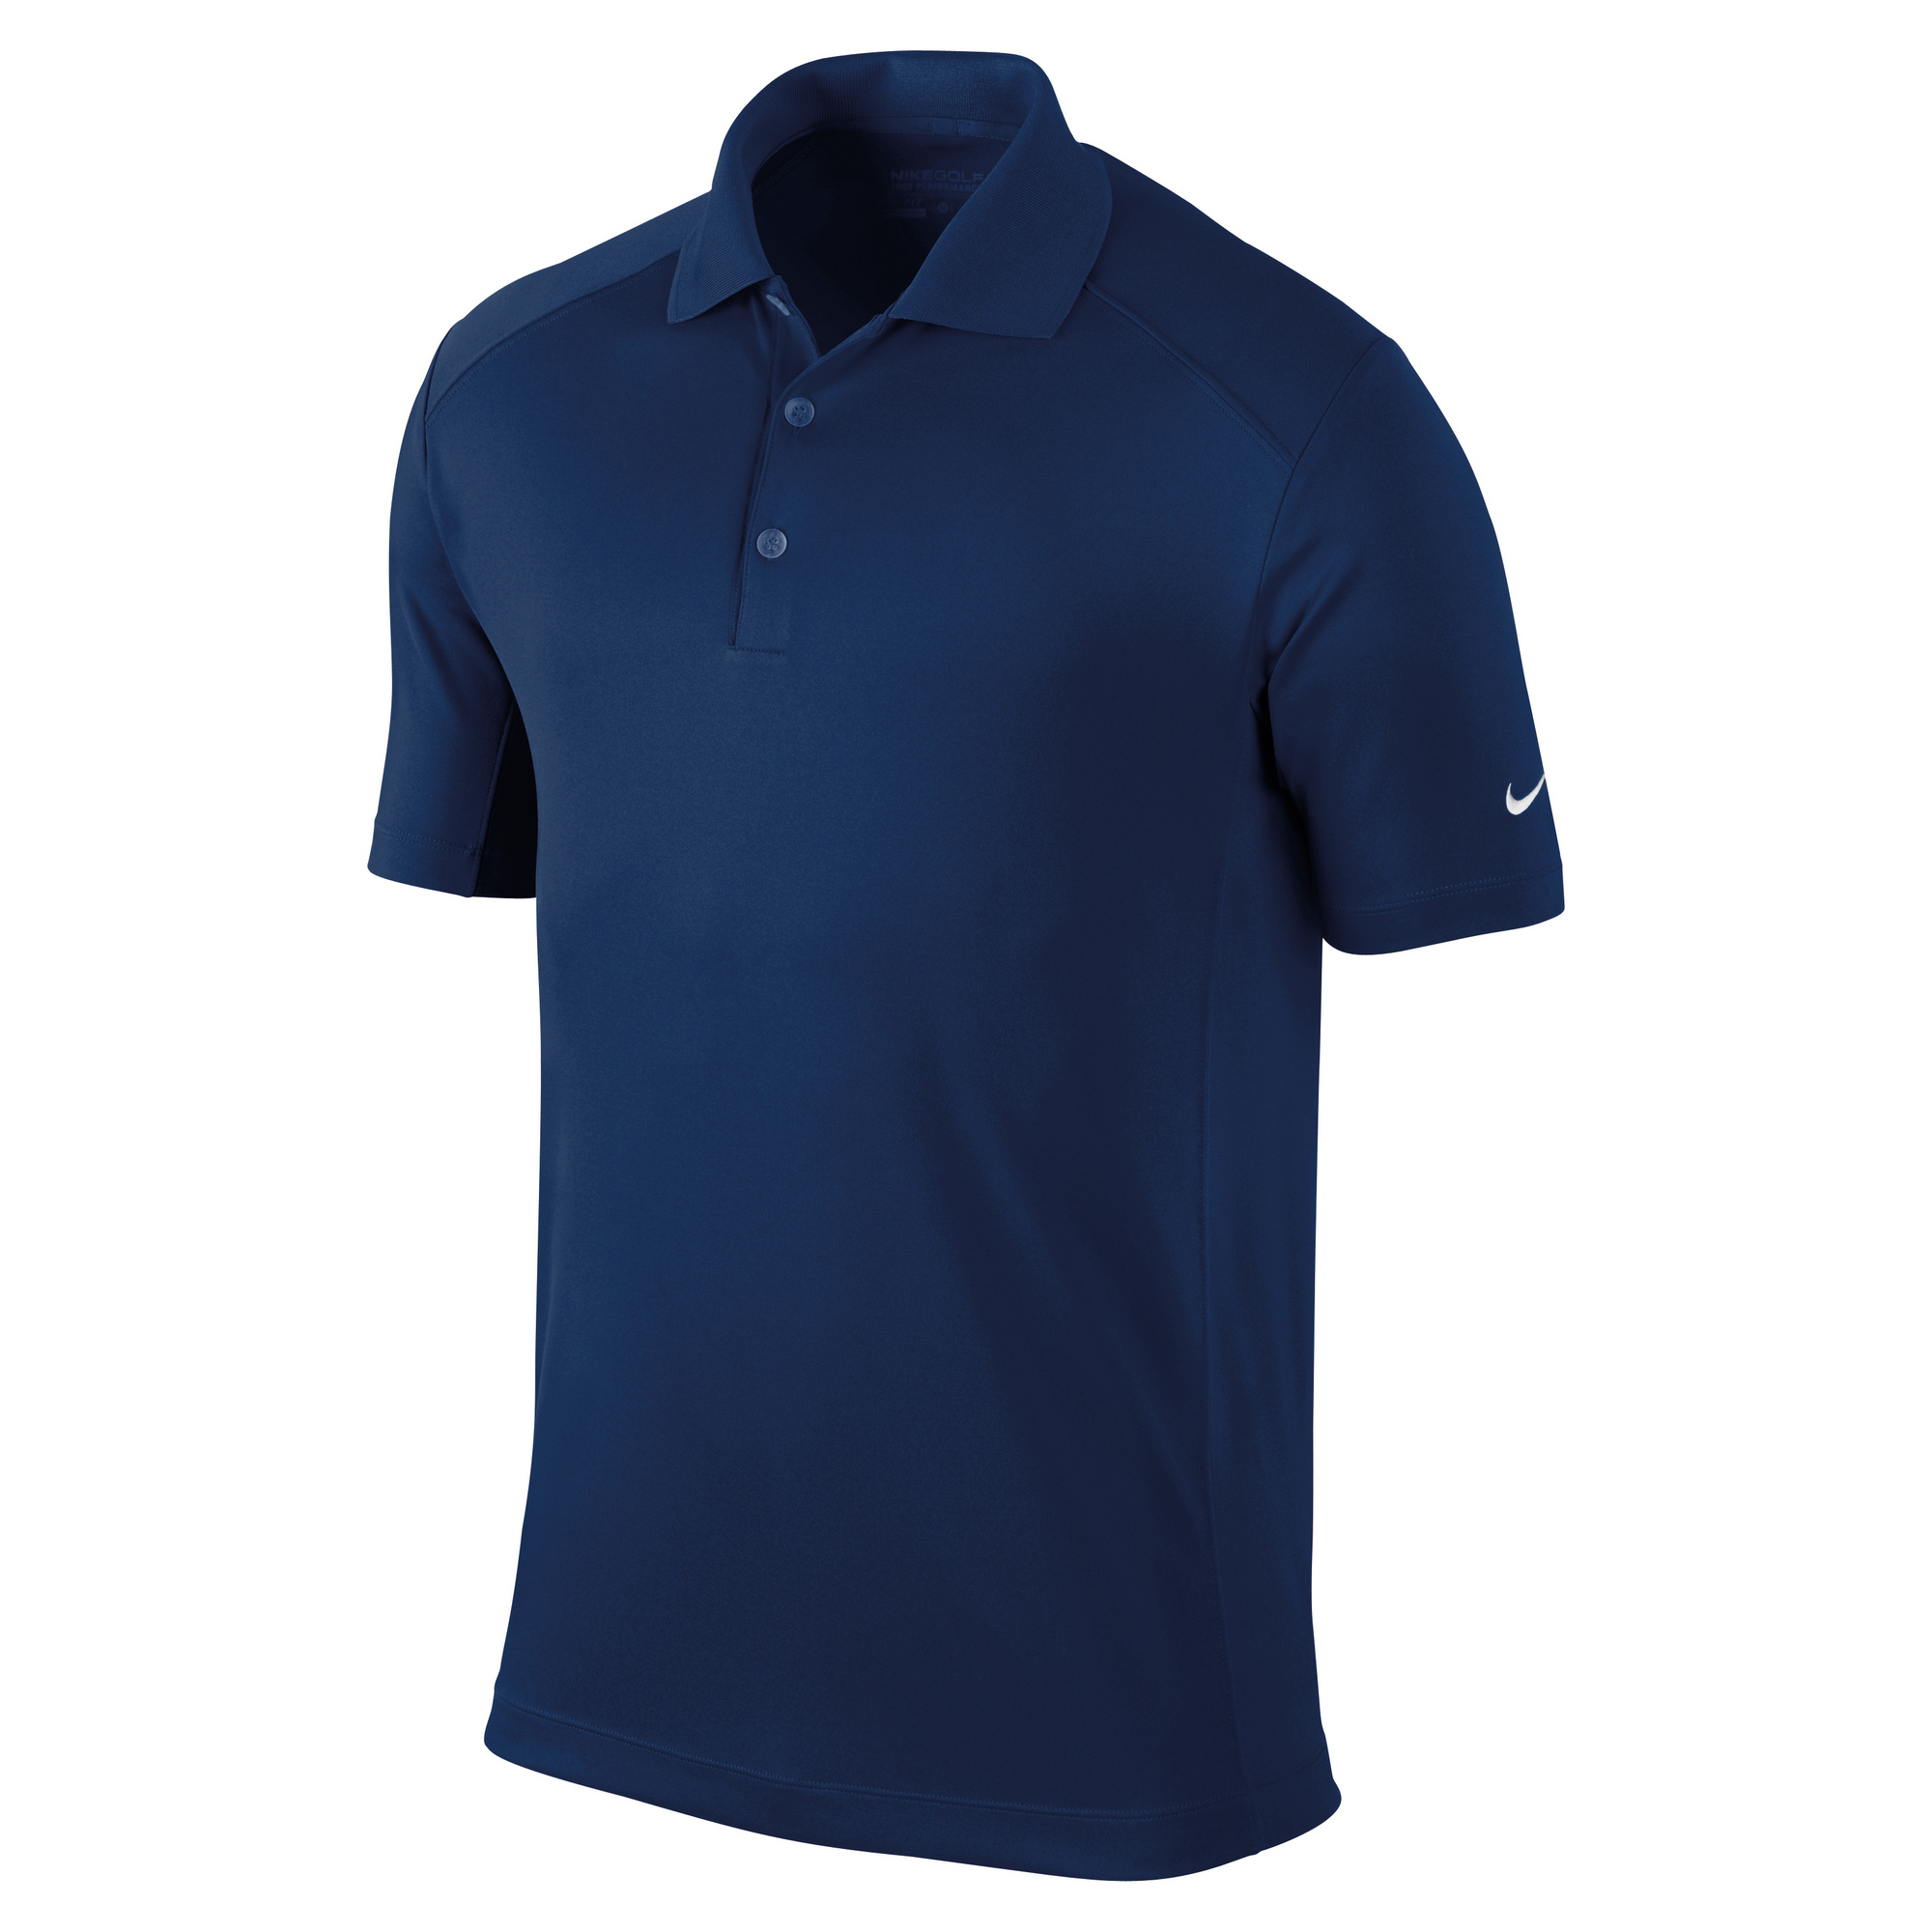 Find Men's Polos at inerloadsr5s.gq Enjoy free shipping and returns with NikePlus.